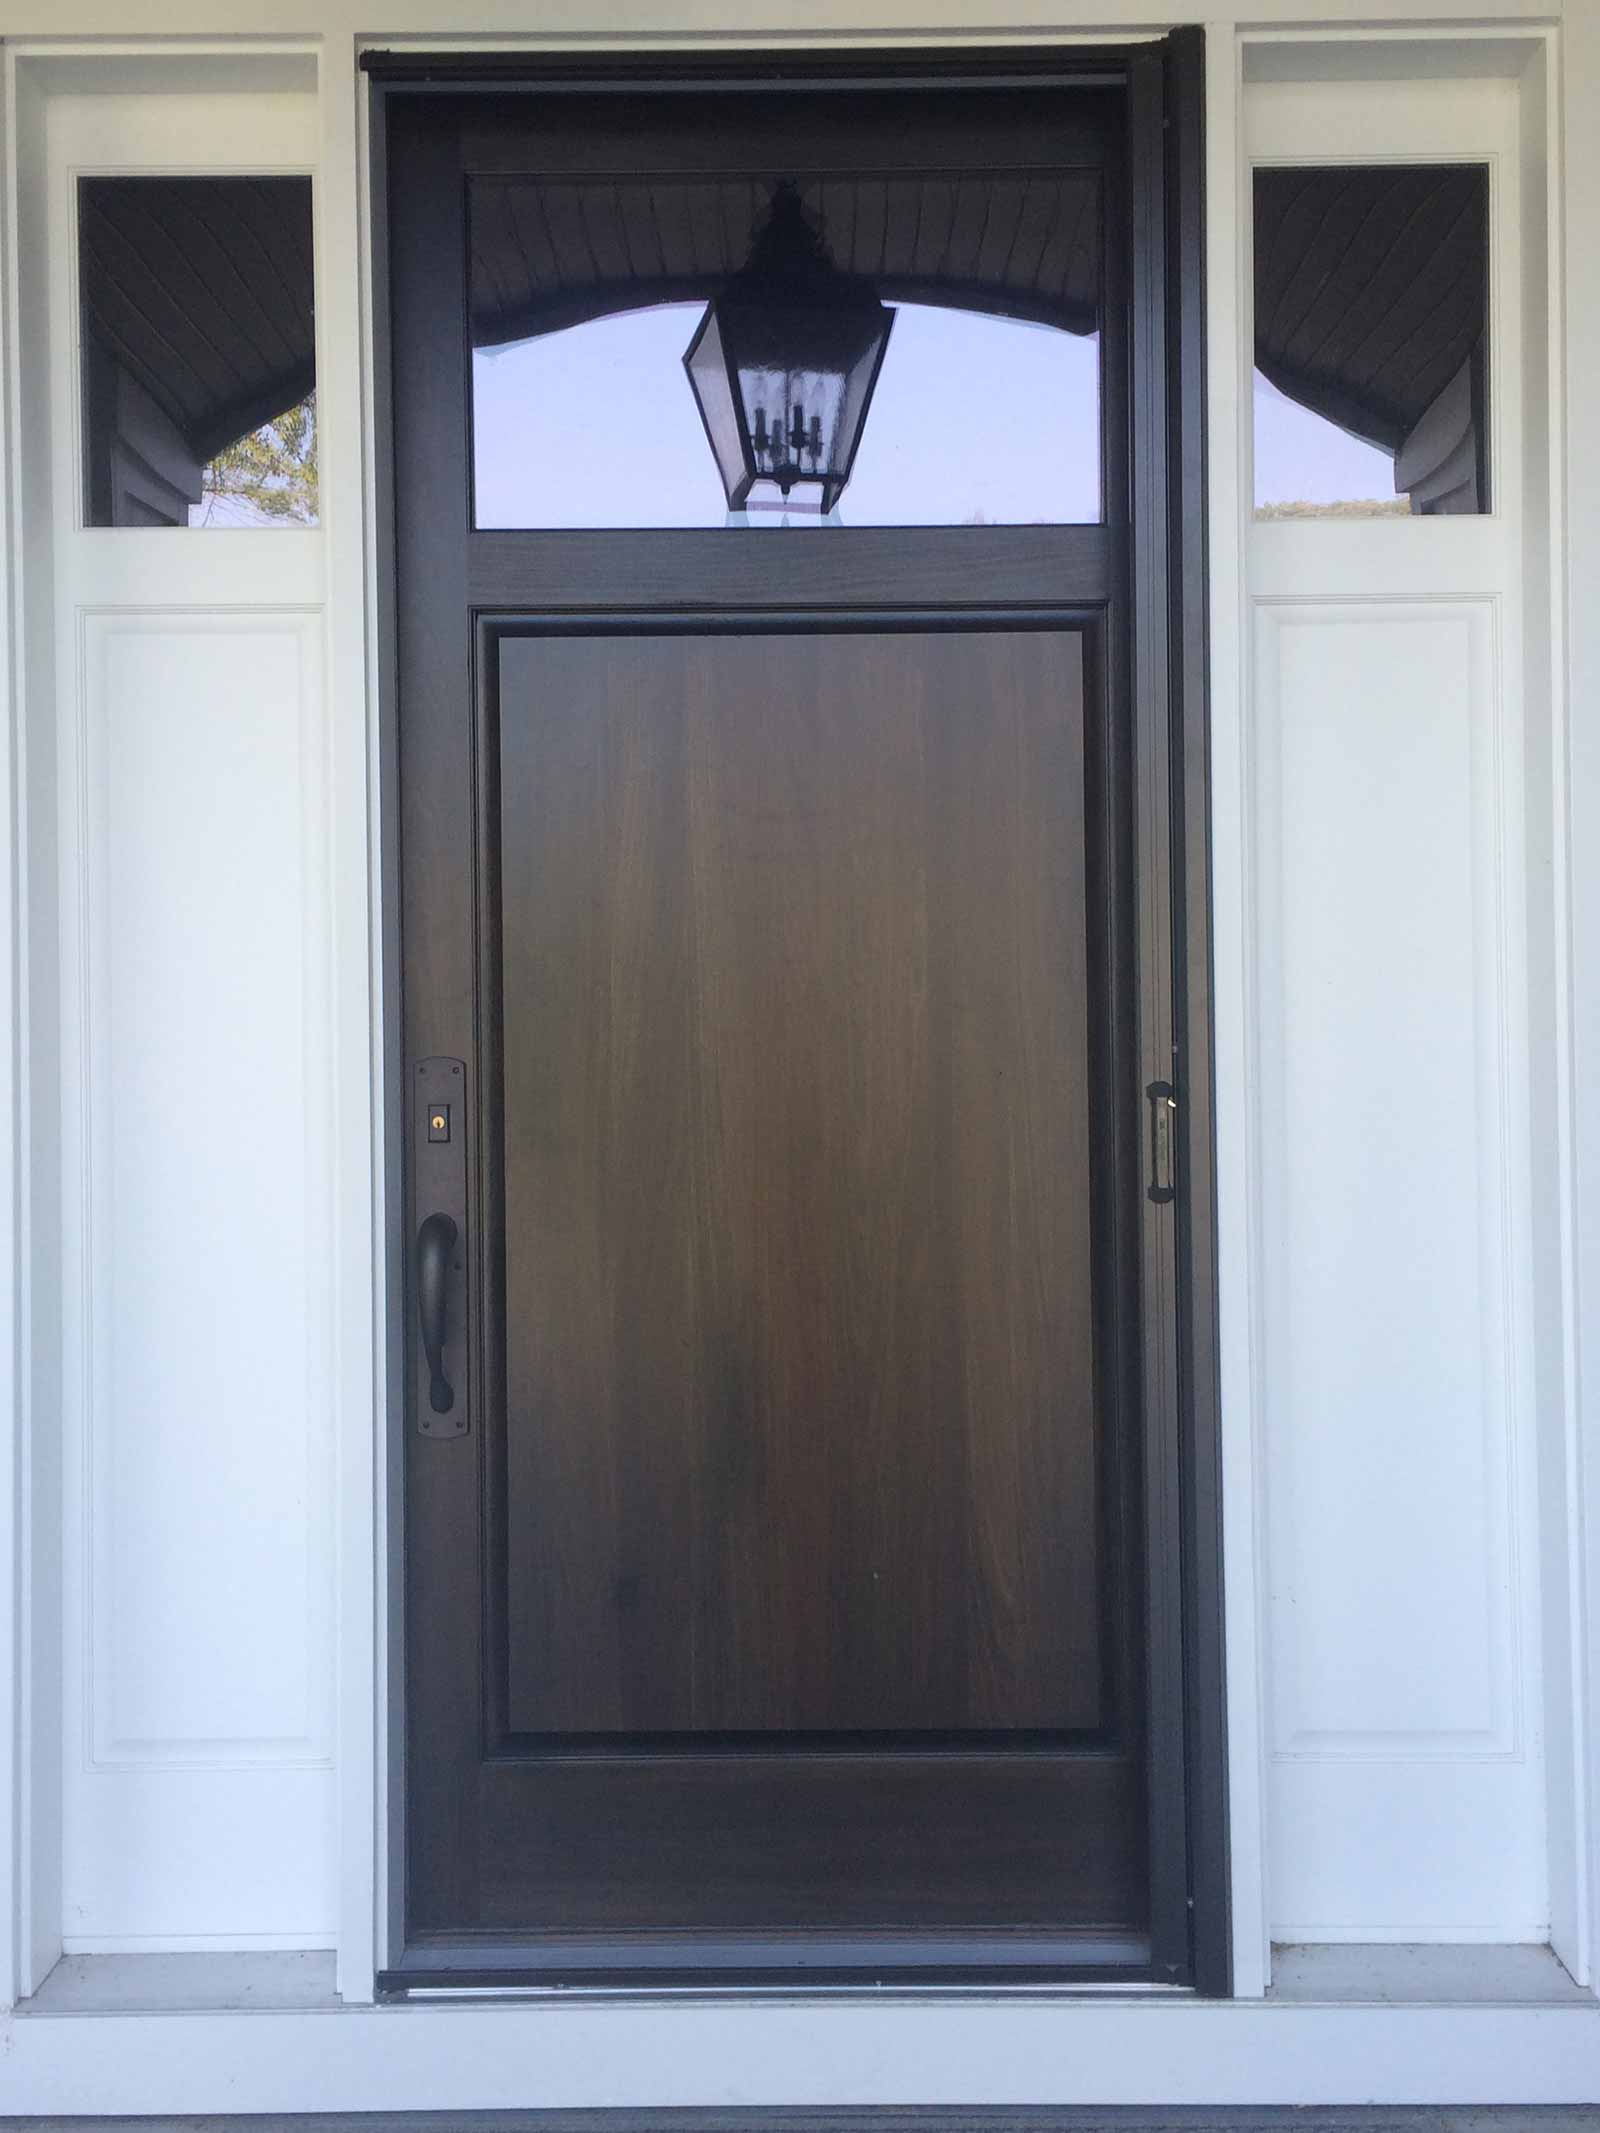 Retractable door screens phantom door screens for Phantom door screens prices